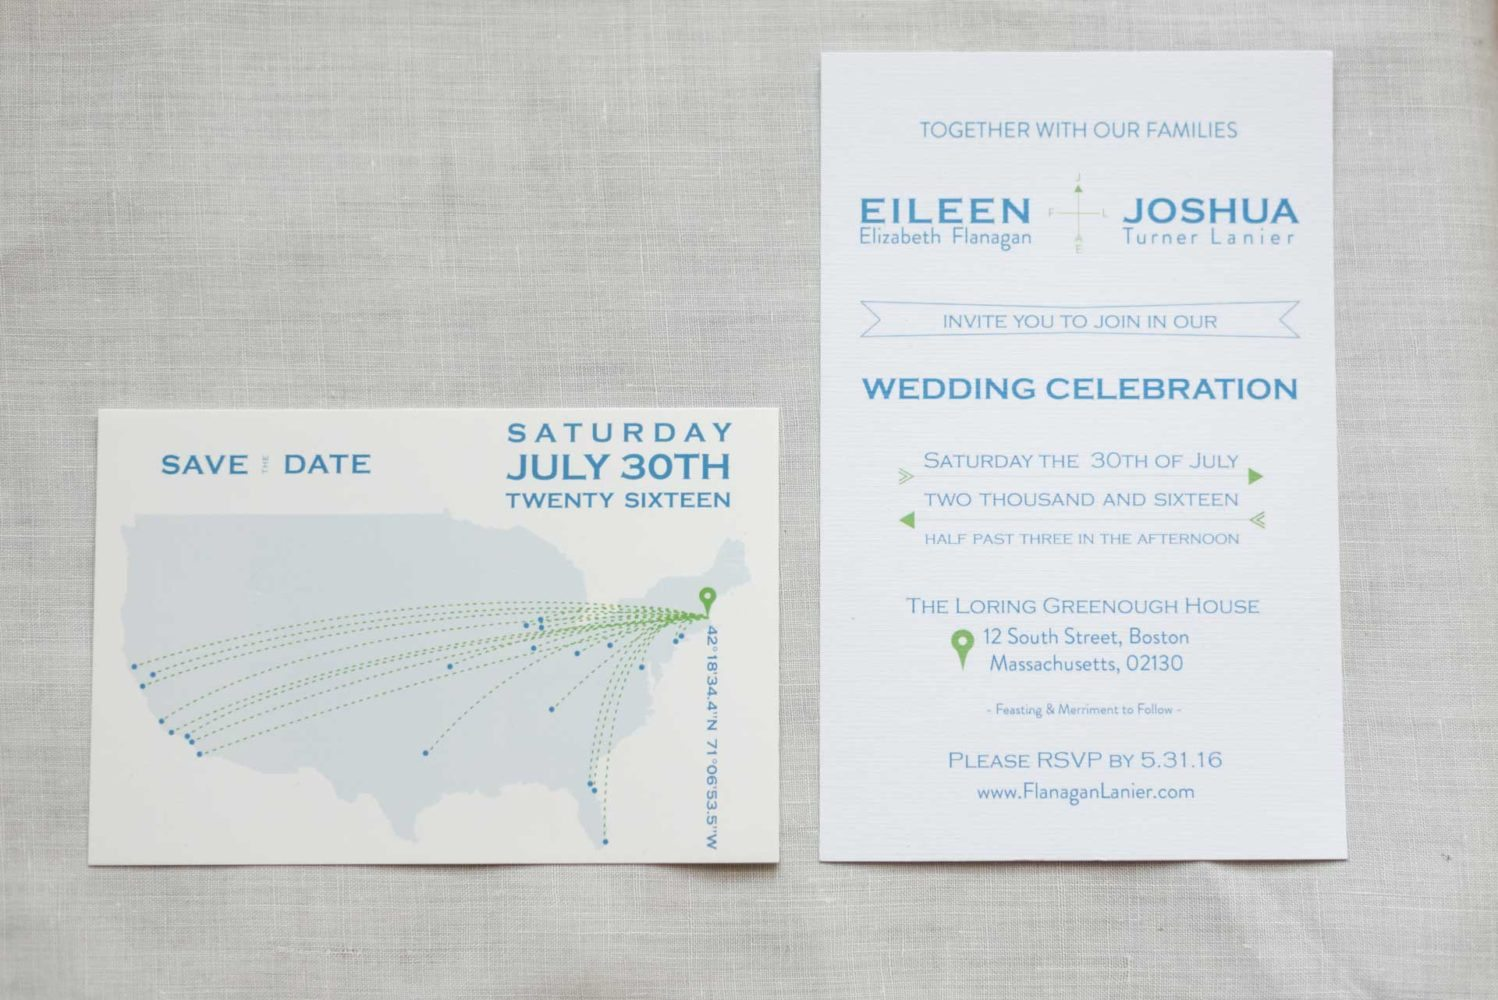 guide to creating wedding invitations boston wedding planner